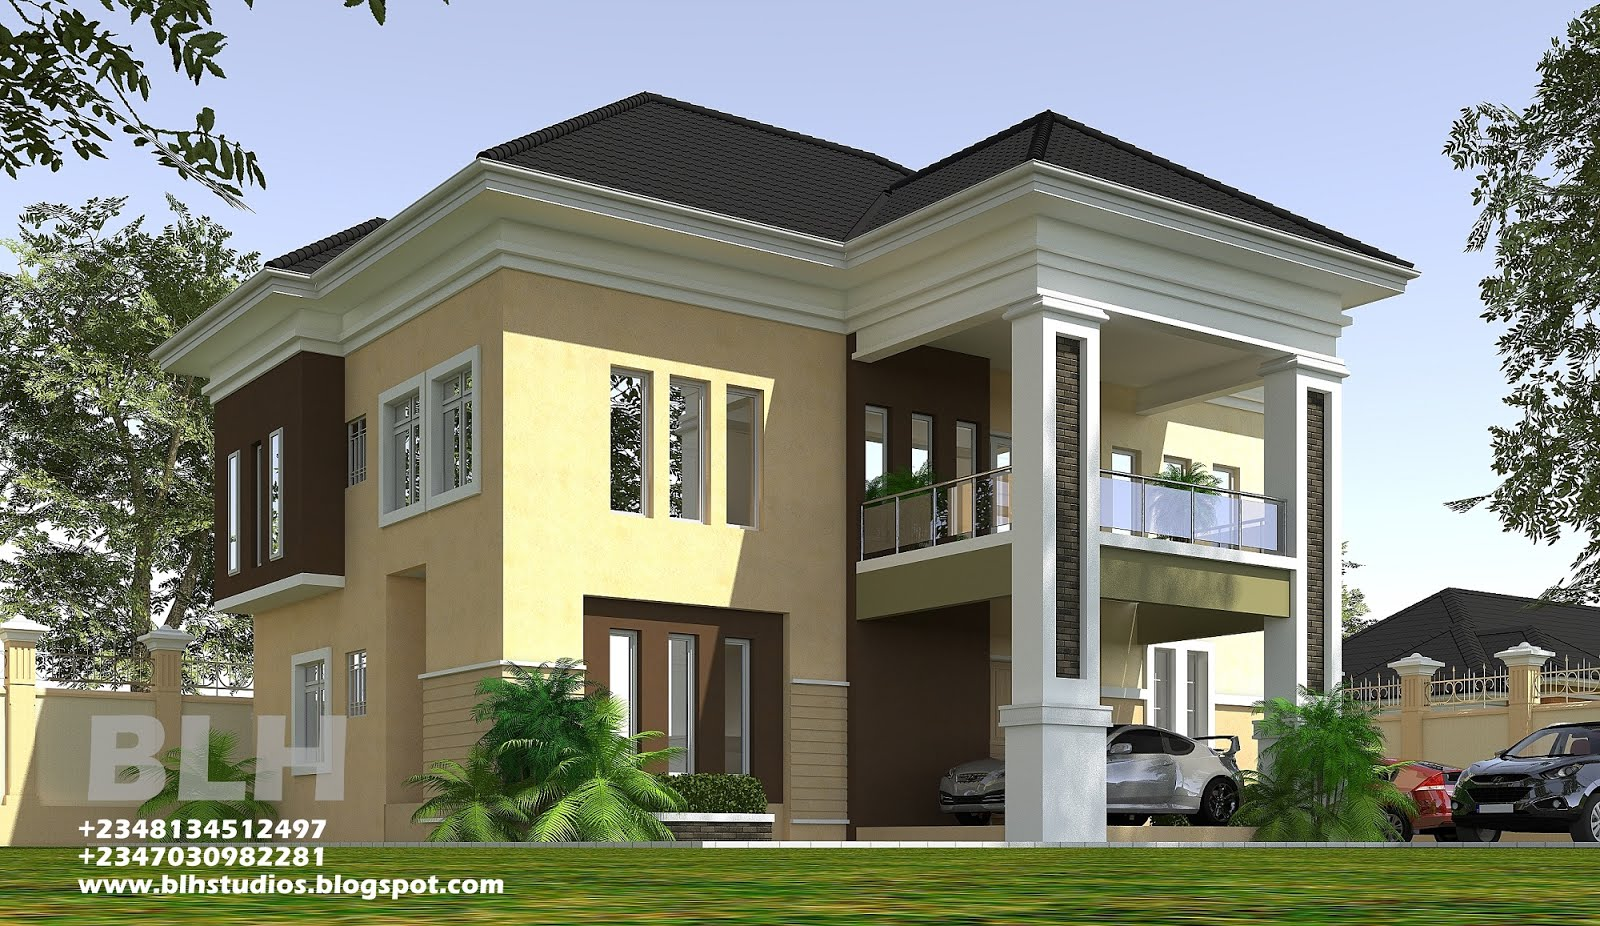 Architectural designs by blacklakehouse 2 bedroom for Duplex 2